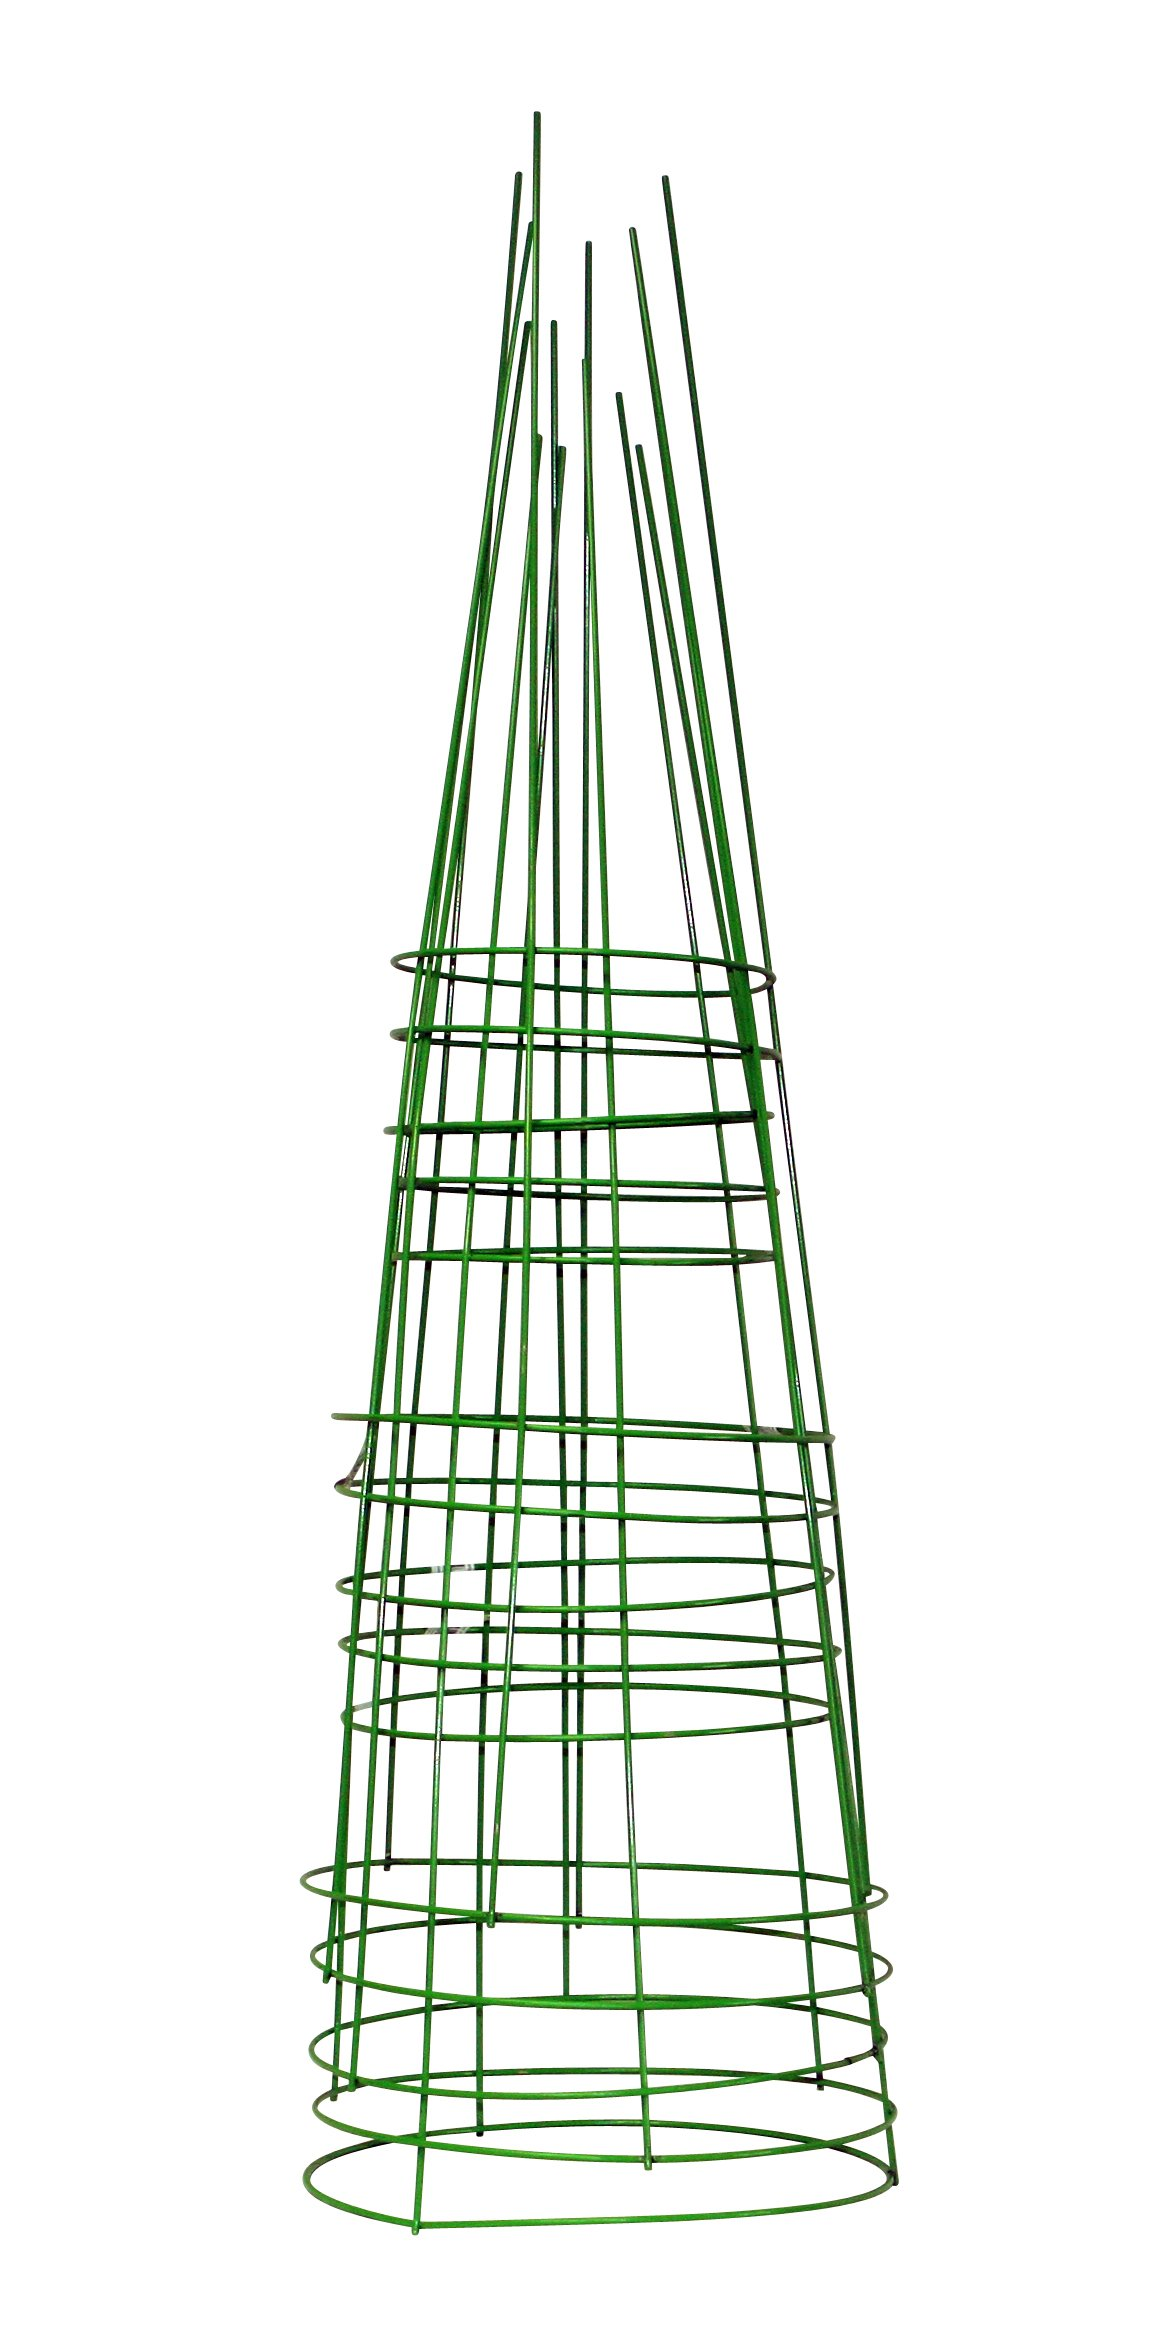 Glamos 748096 14-Inch x 42-Inch Heavy Duty Metal Tomato Cage - 5 Pack Light Green